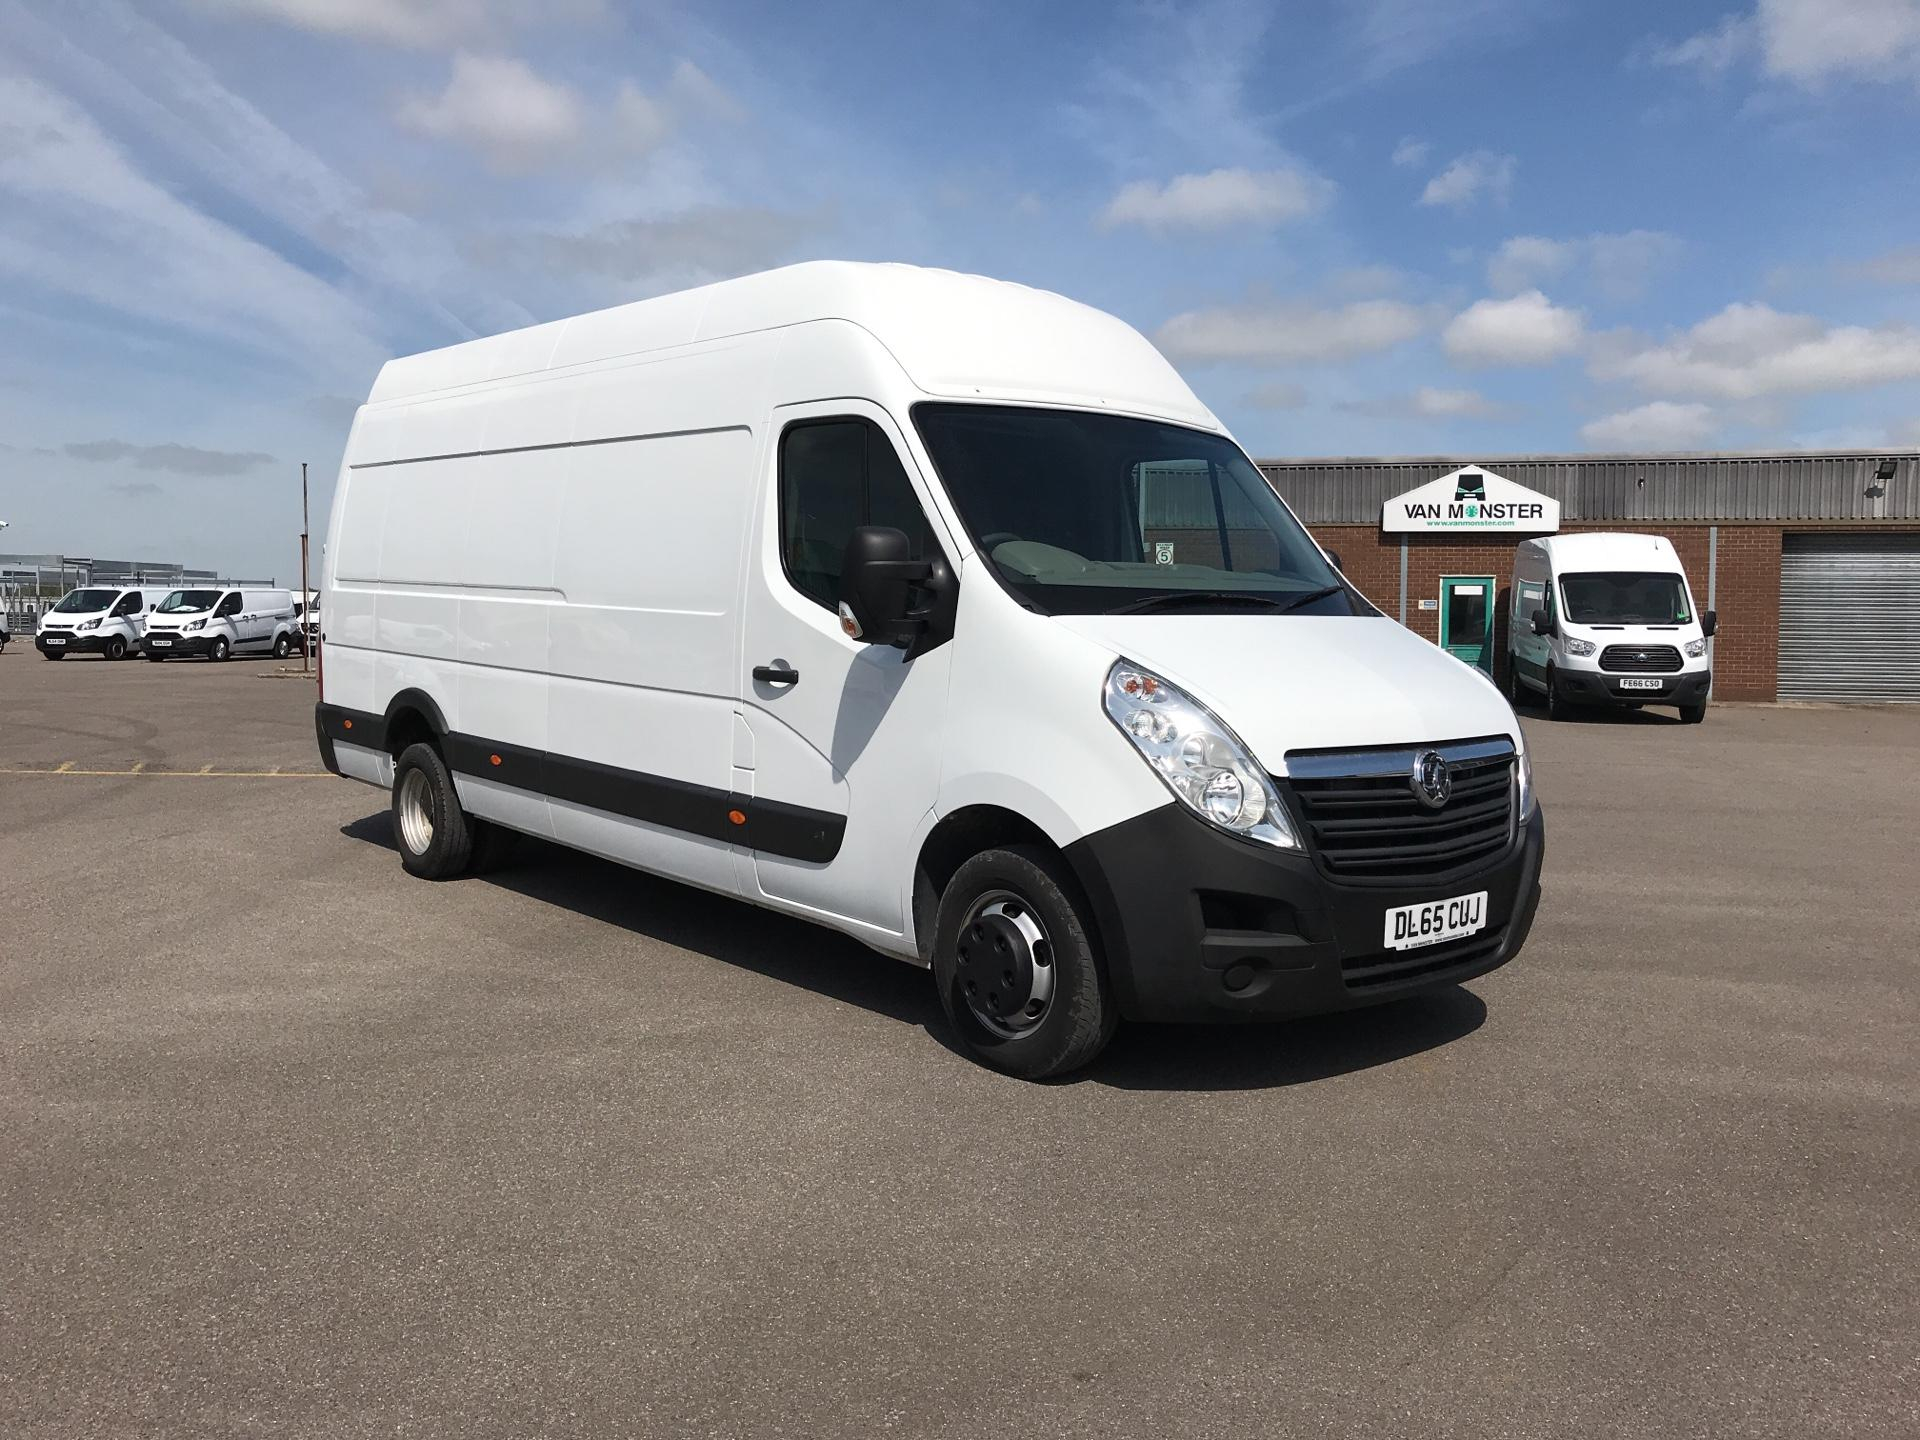 2015 Vauxhall Movano 35 L4 H3 125PS EURO 5. TWIN REAR WHEELS (DL65CUJ)